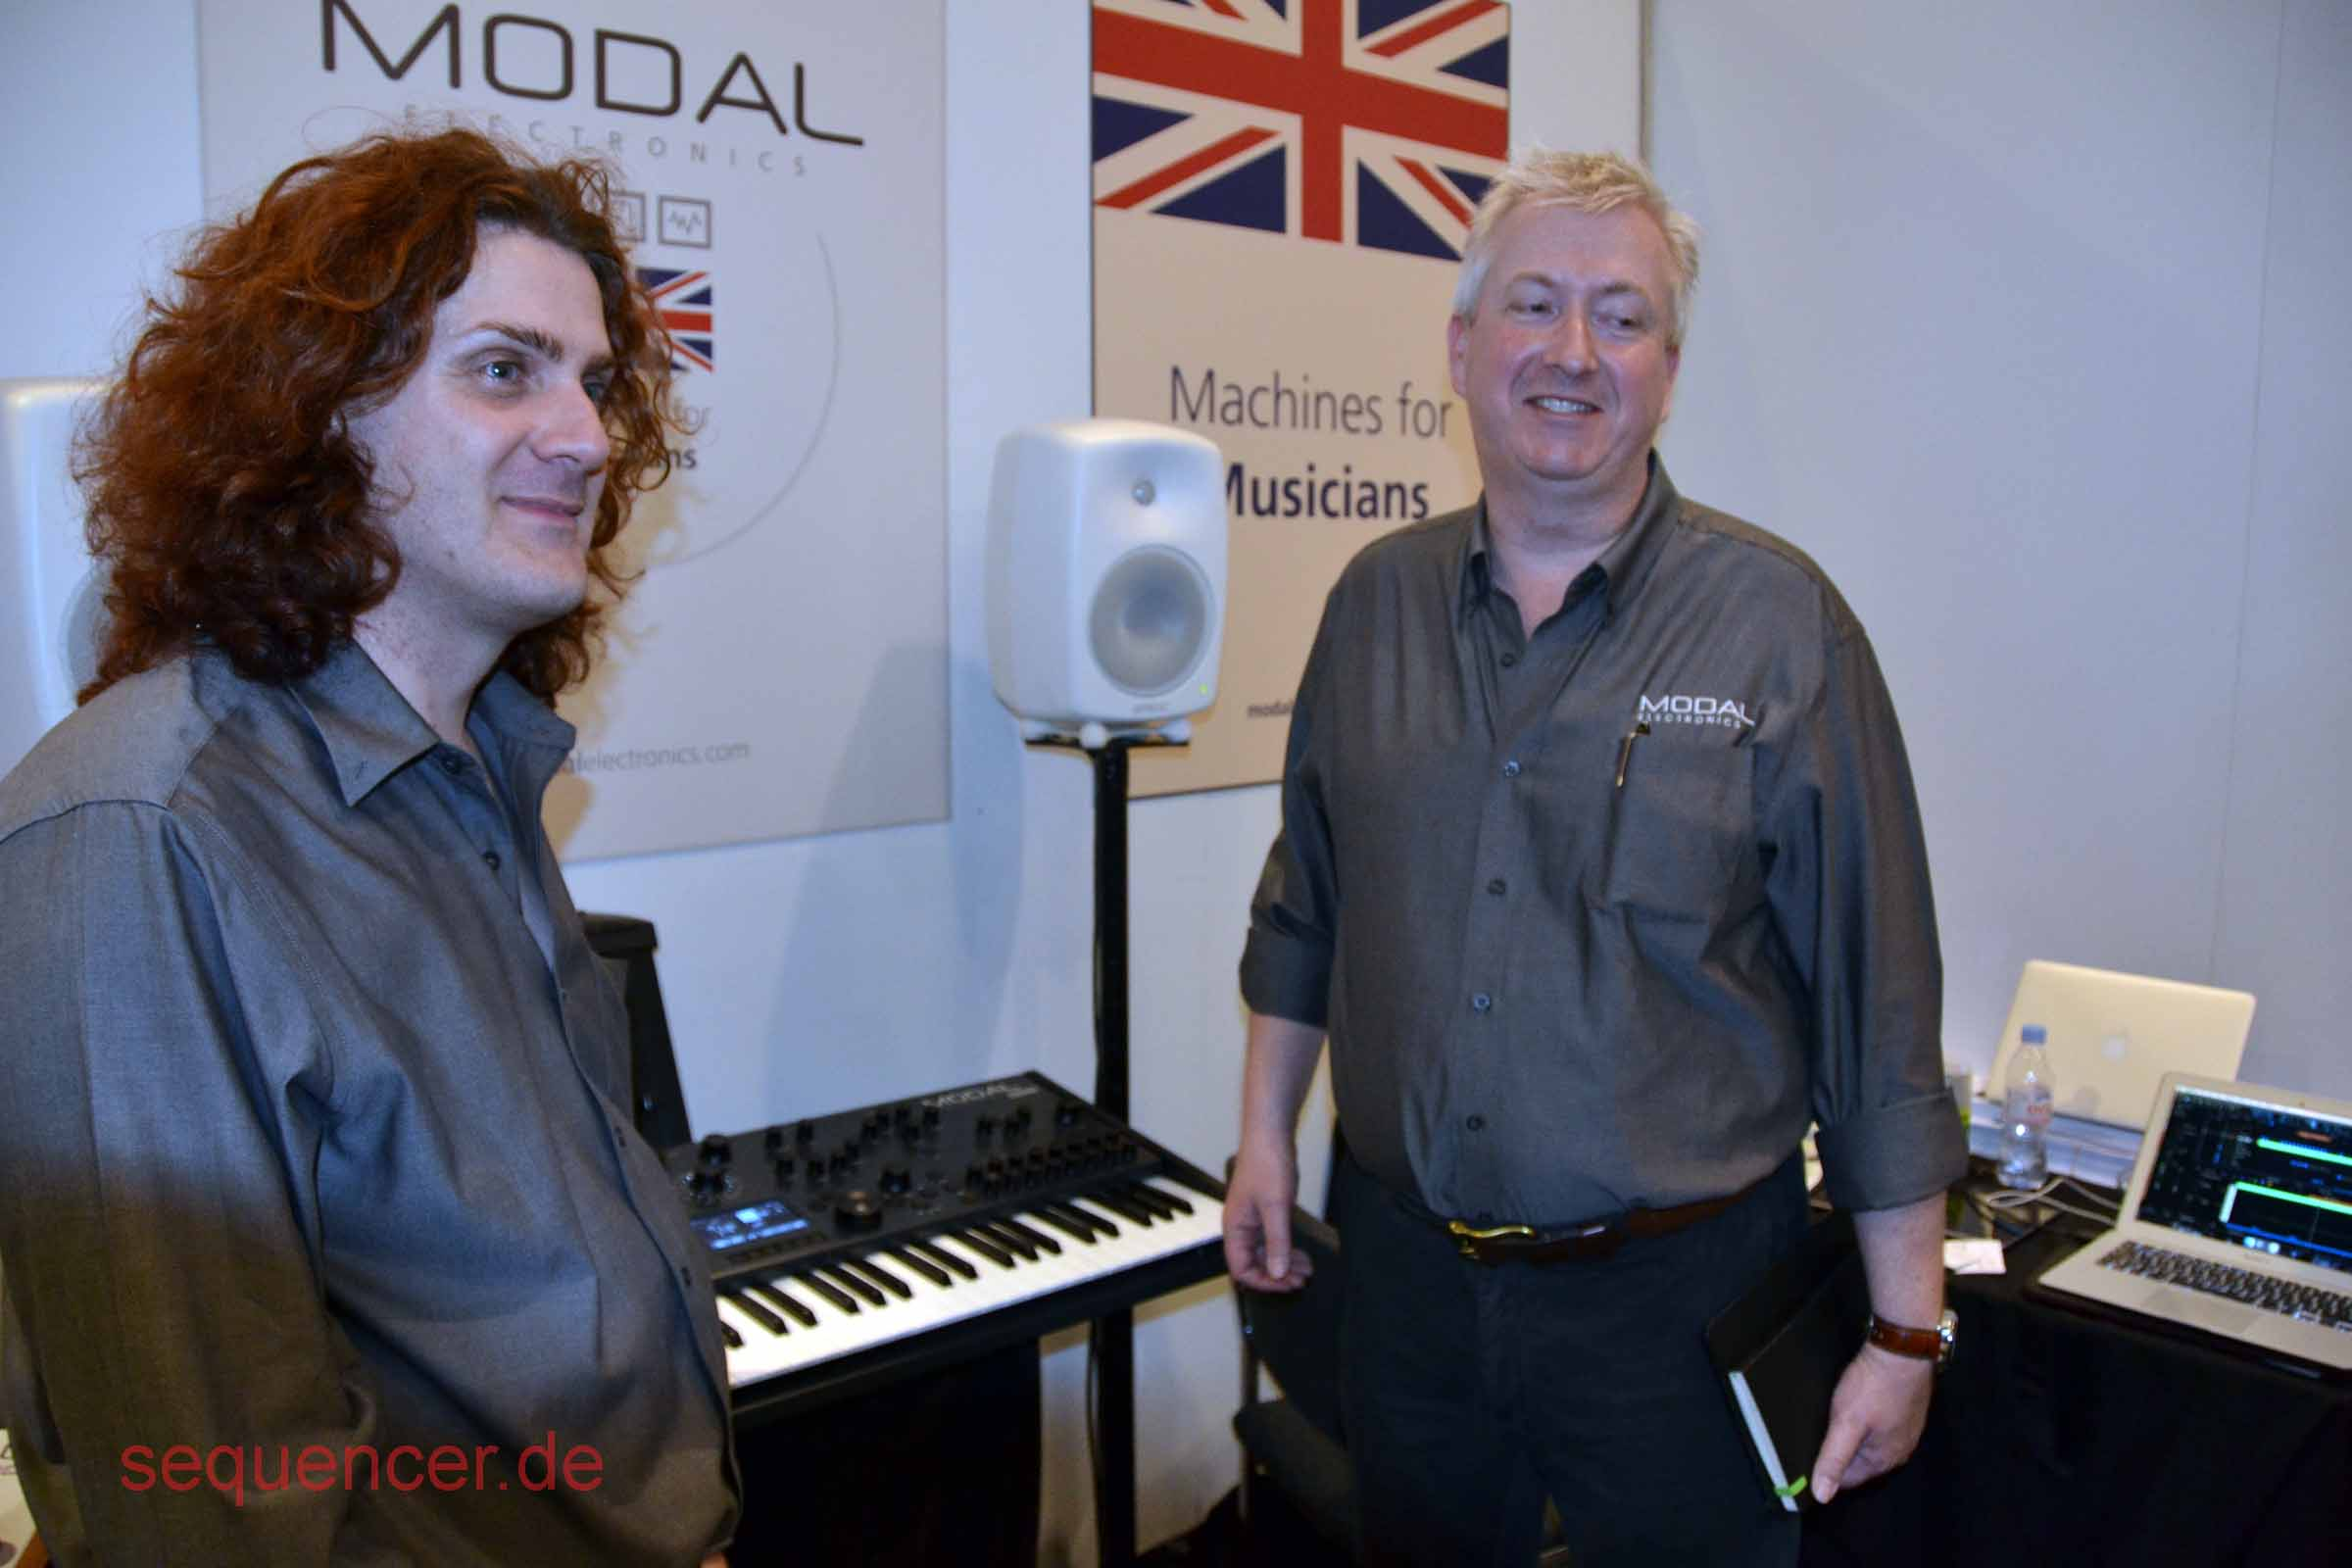 about the MODAL synthesizer company